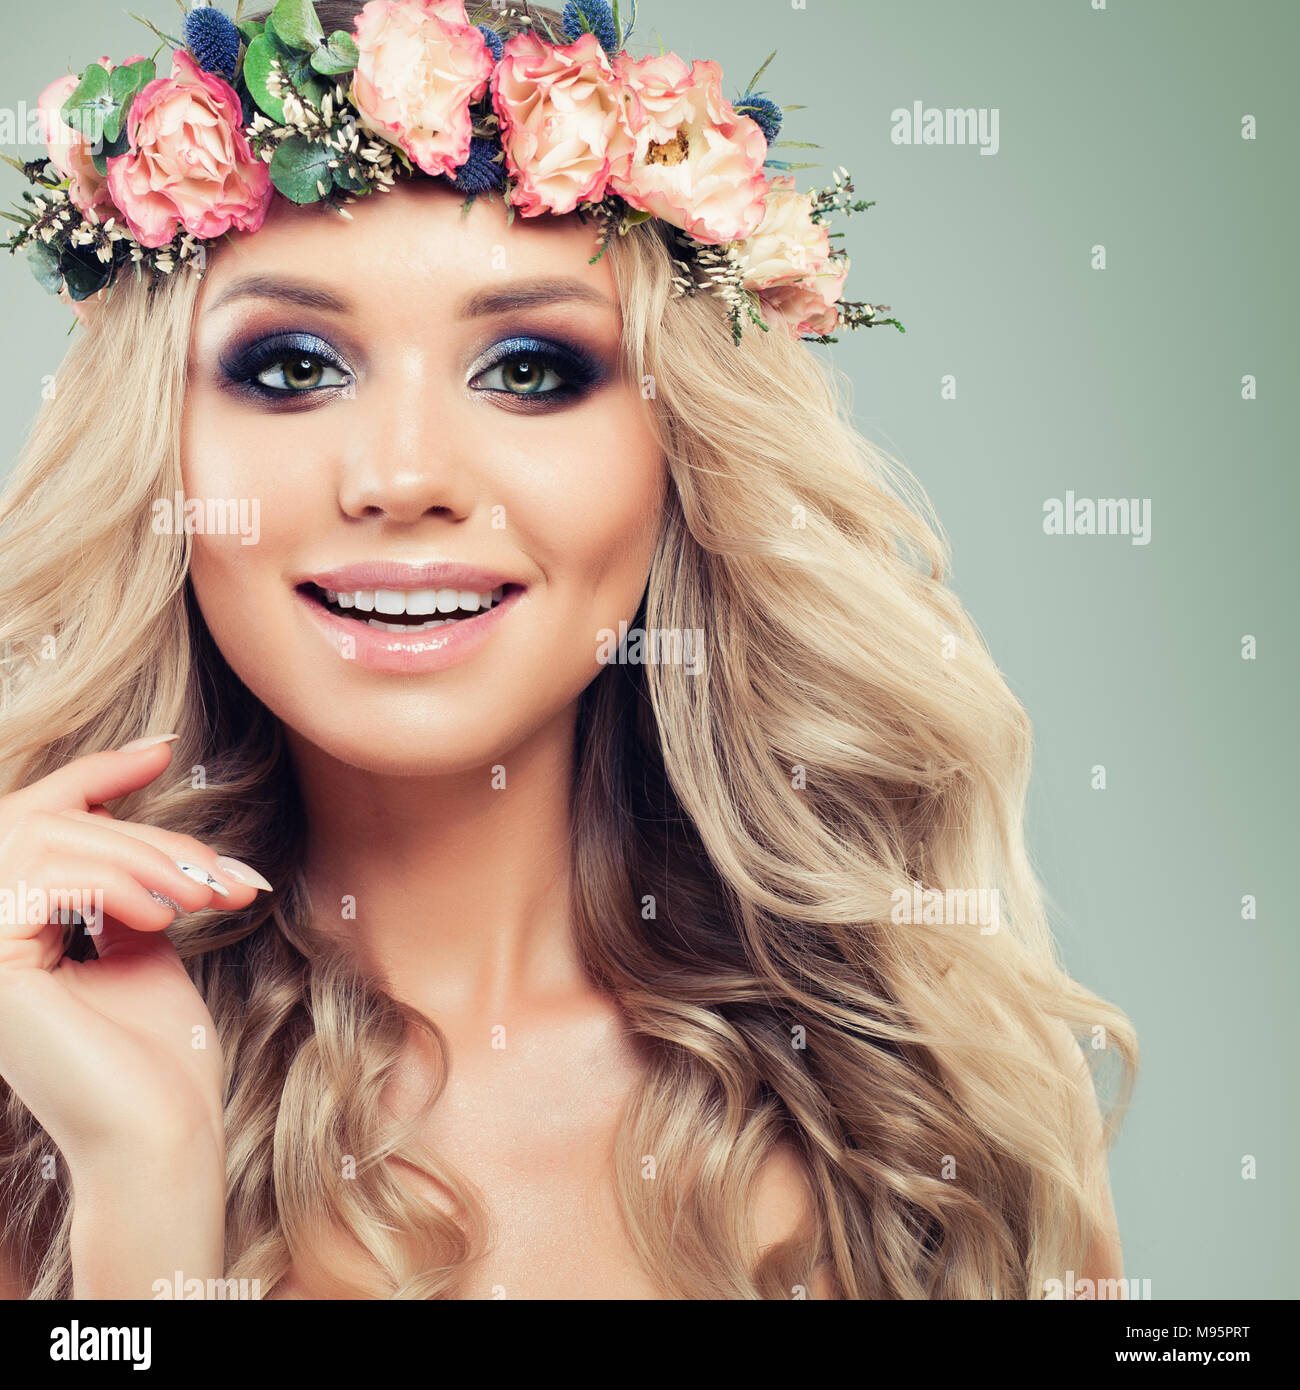 Portrait Of Beautiful Young Woman With Makeup Blonde Hair